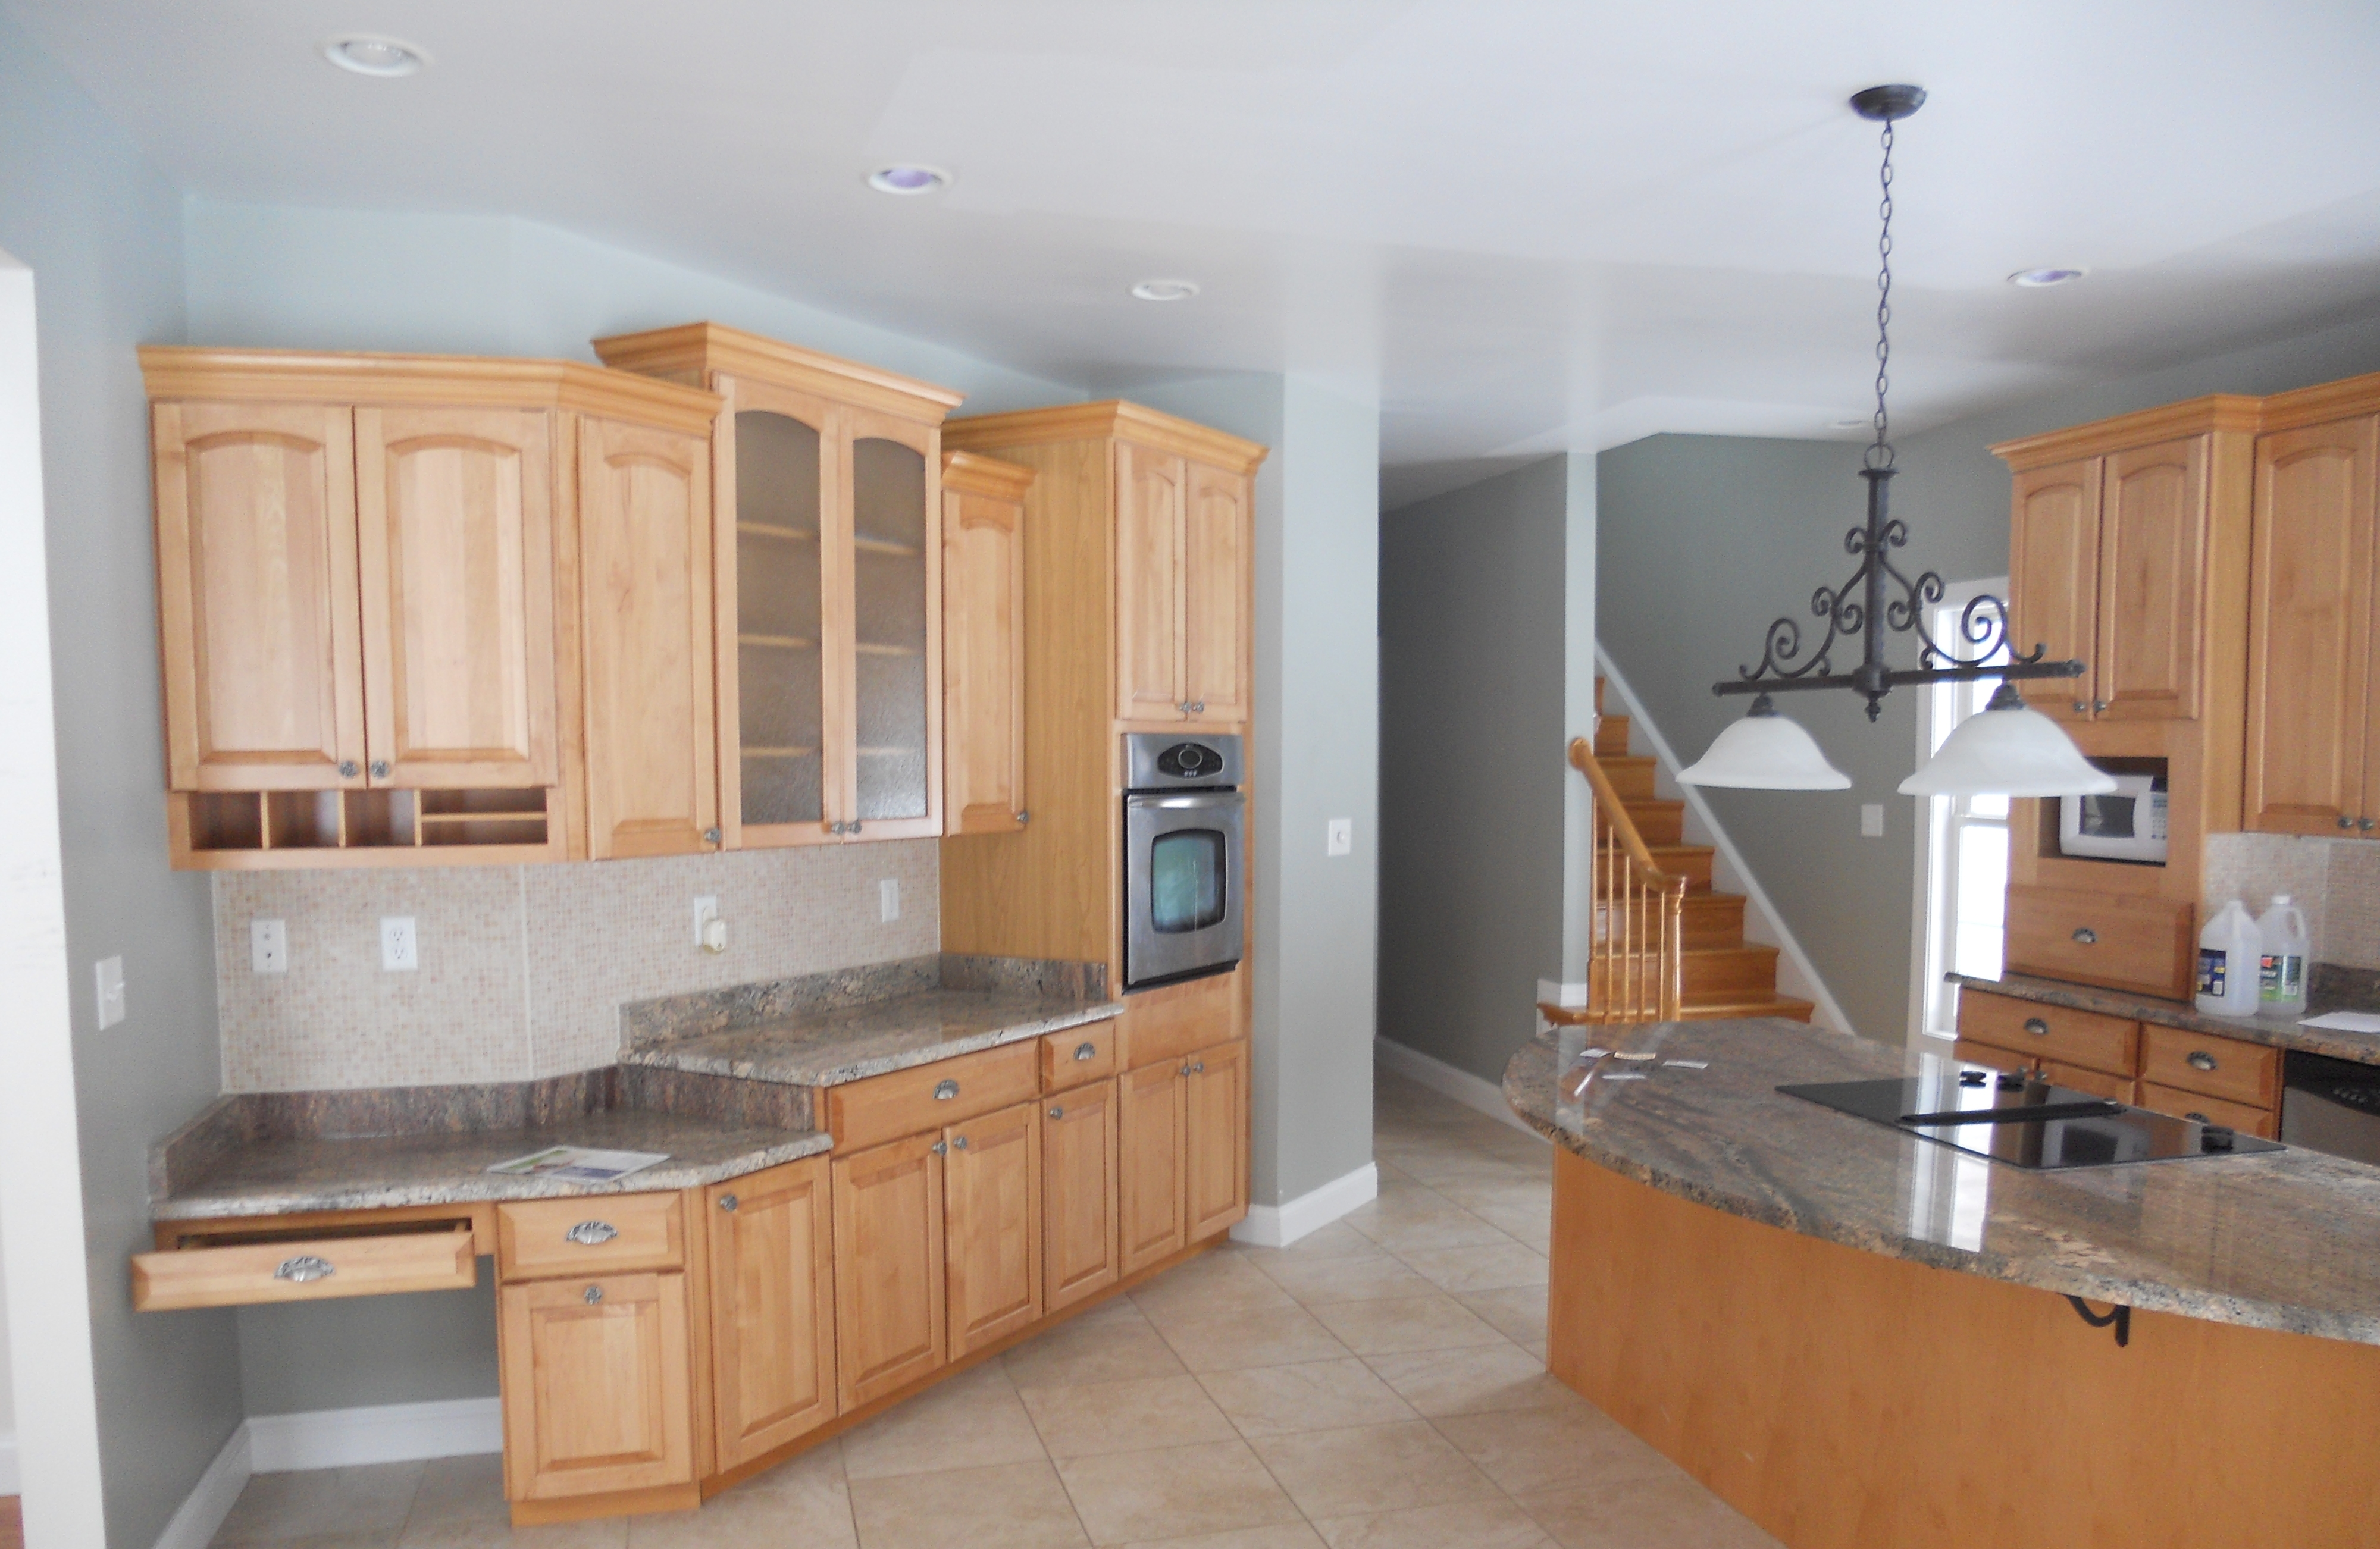 Gorgeous Kitchen Renovation In Potomac Maryland: Remodeling Services